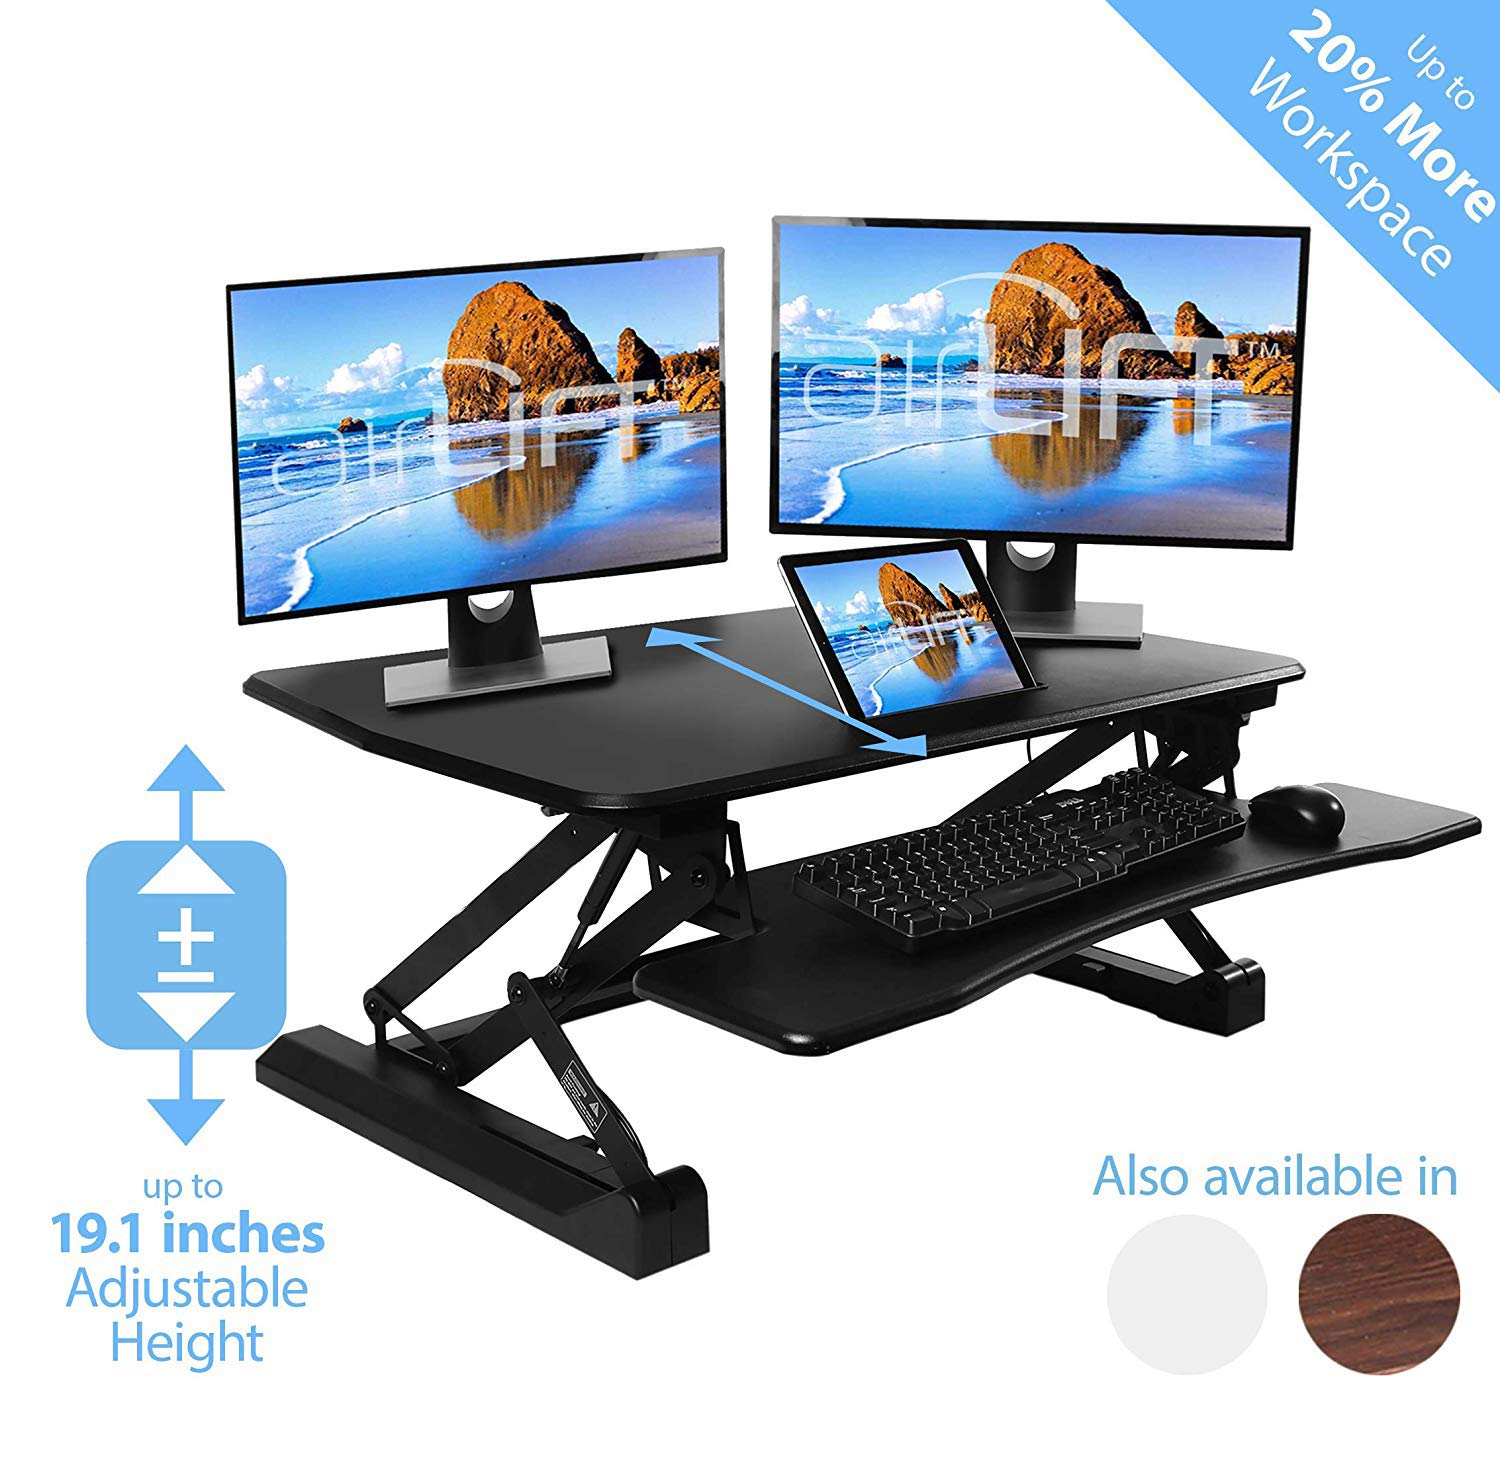 AIRLIFT 36'' Gas-Spring Height Adjustable Standing Desk Converter Workstation Ergonomic Dual Monitor Riser with Keyboard Tray and Phone/Tablet Holder, Black by Seville Classics